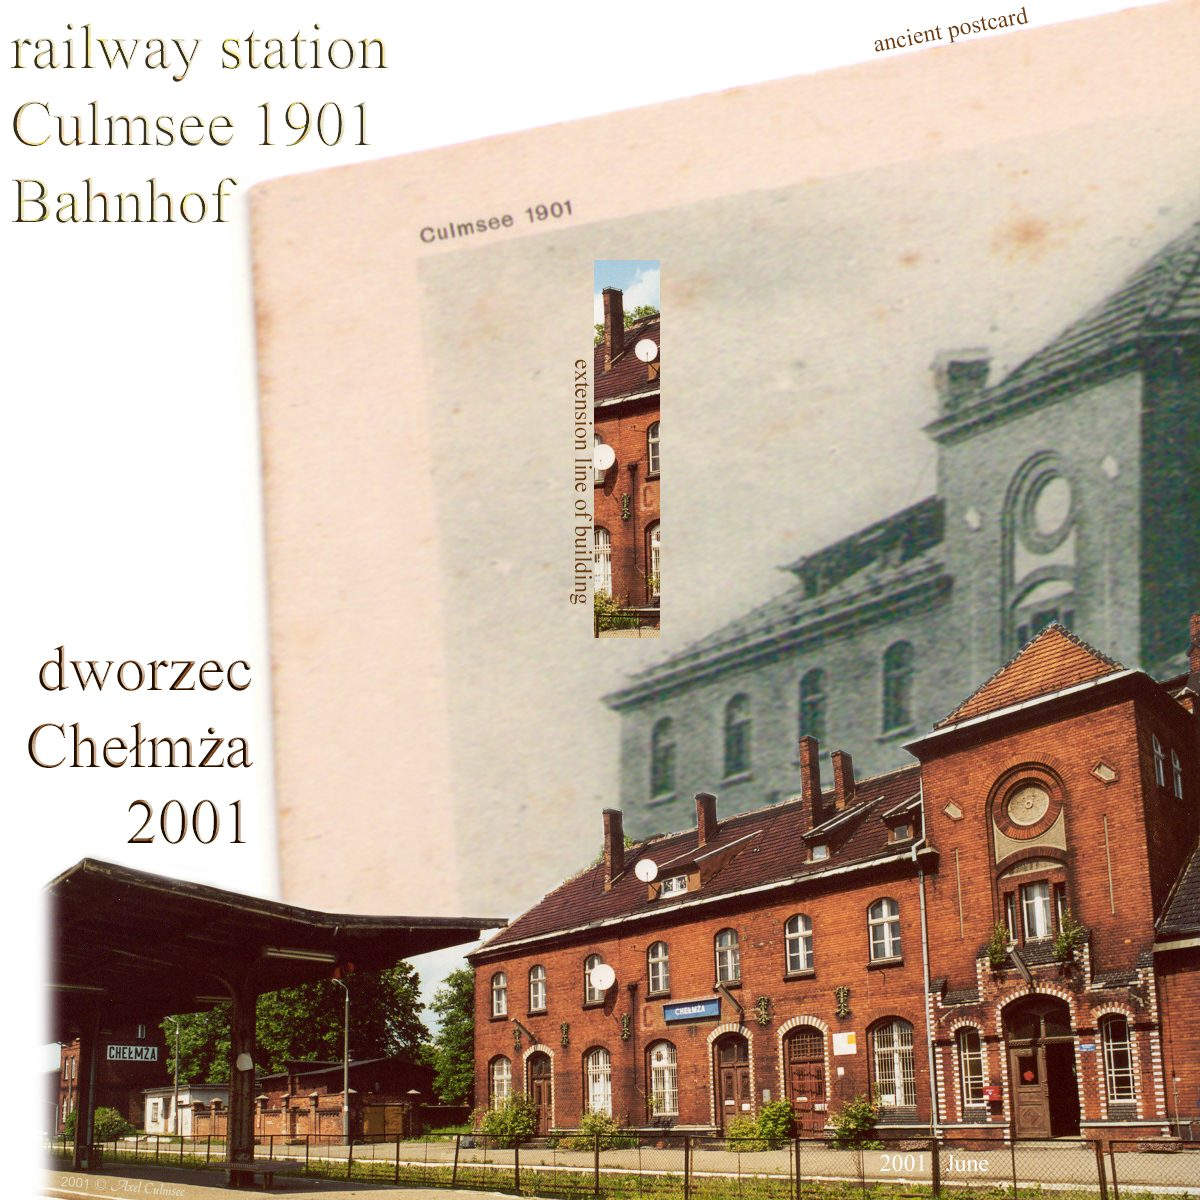 Culmsee 1901 Chelmza 2001 railway station annexe of building